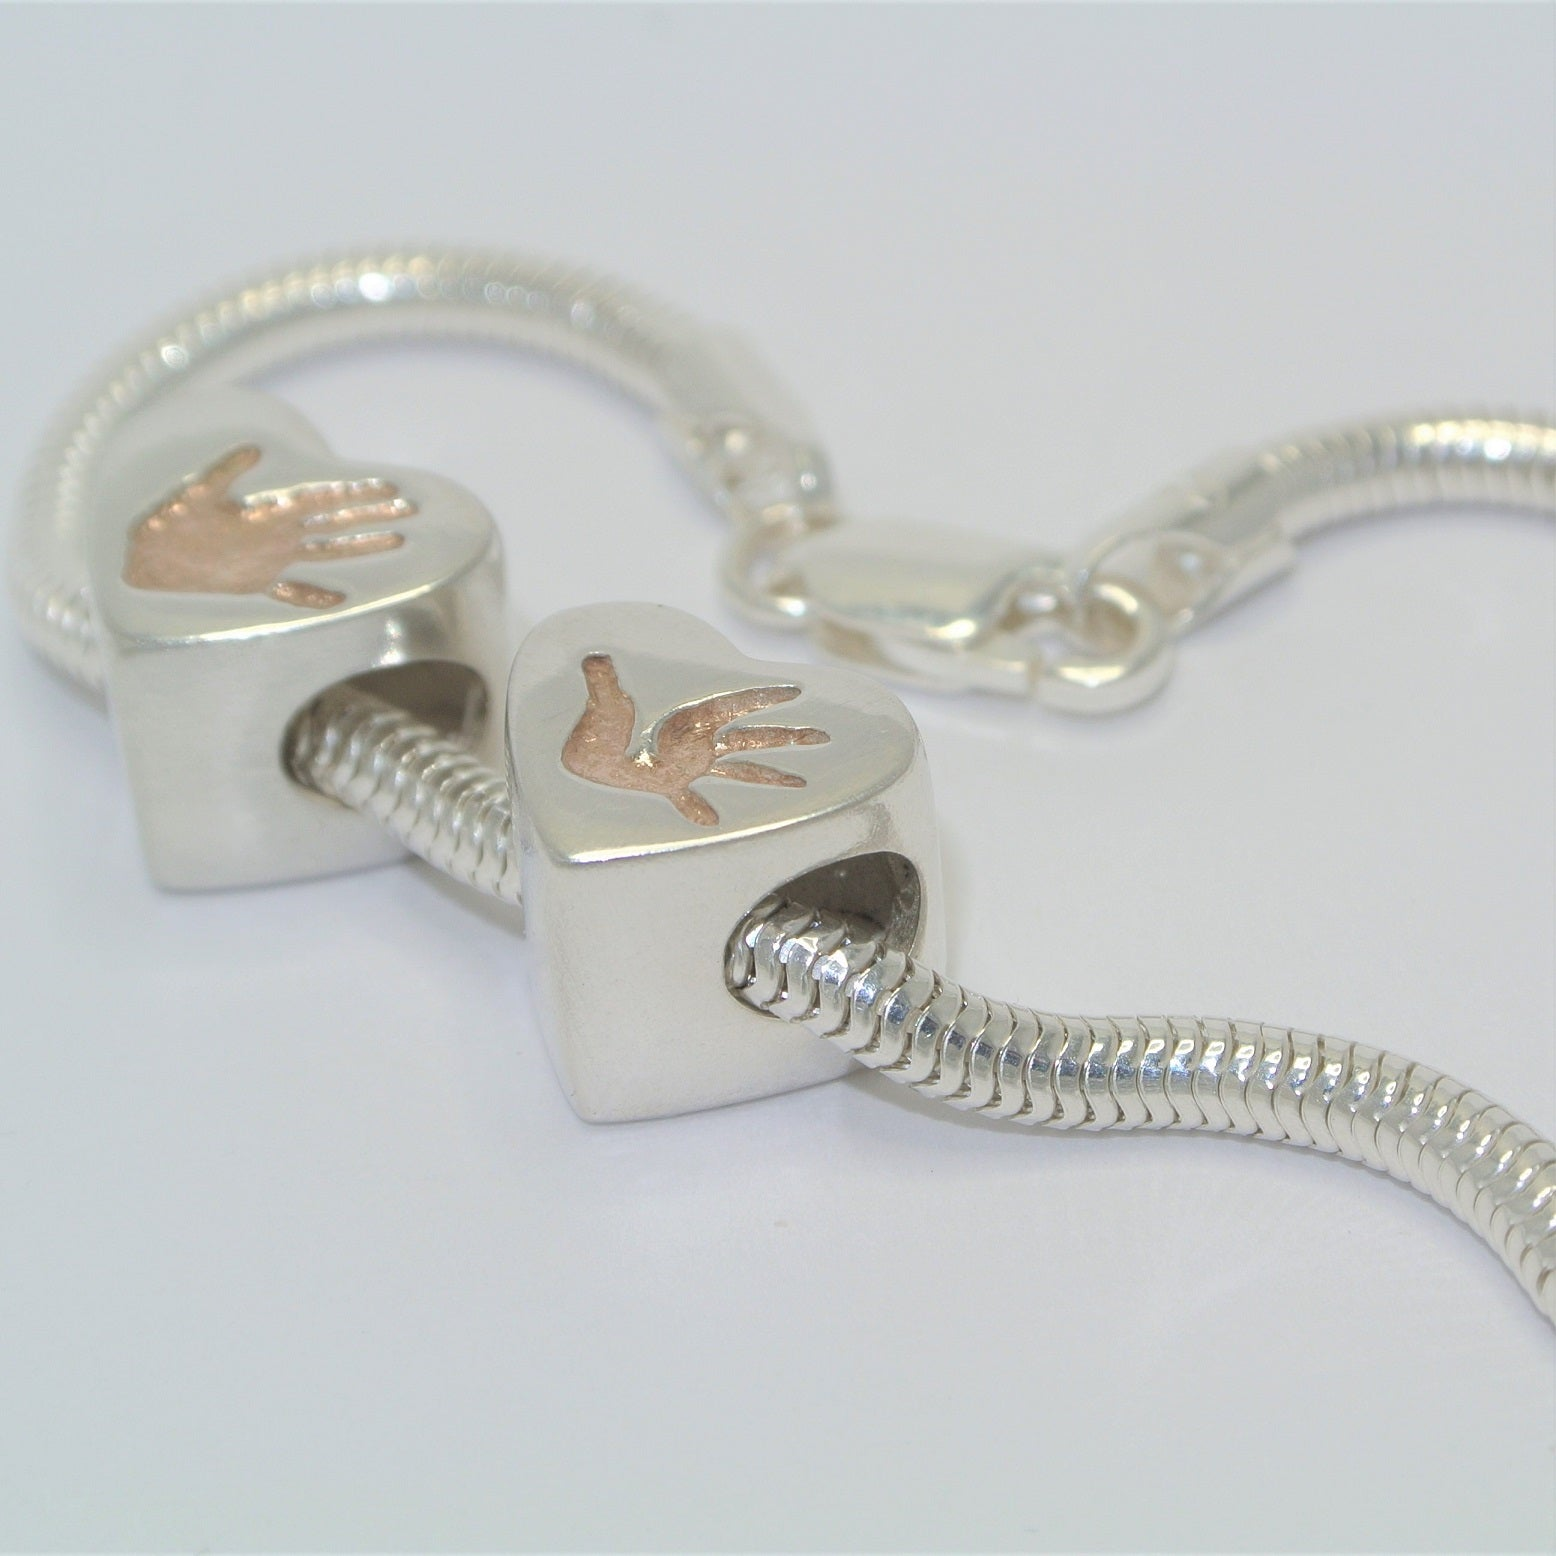 Heart Bracelet Charm Bead with Rose Gold Sterling Silver Handprint Jewellery